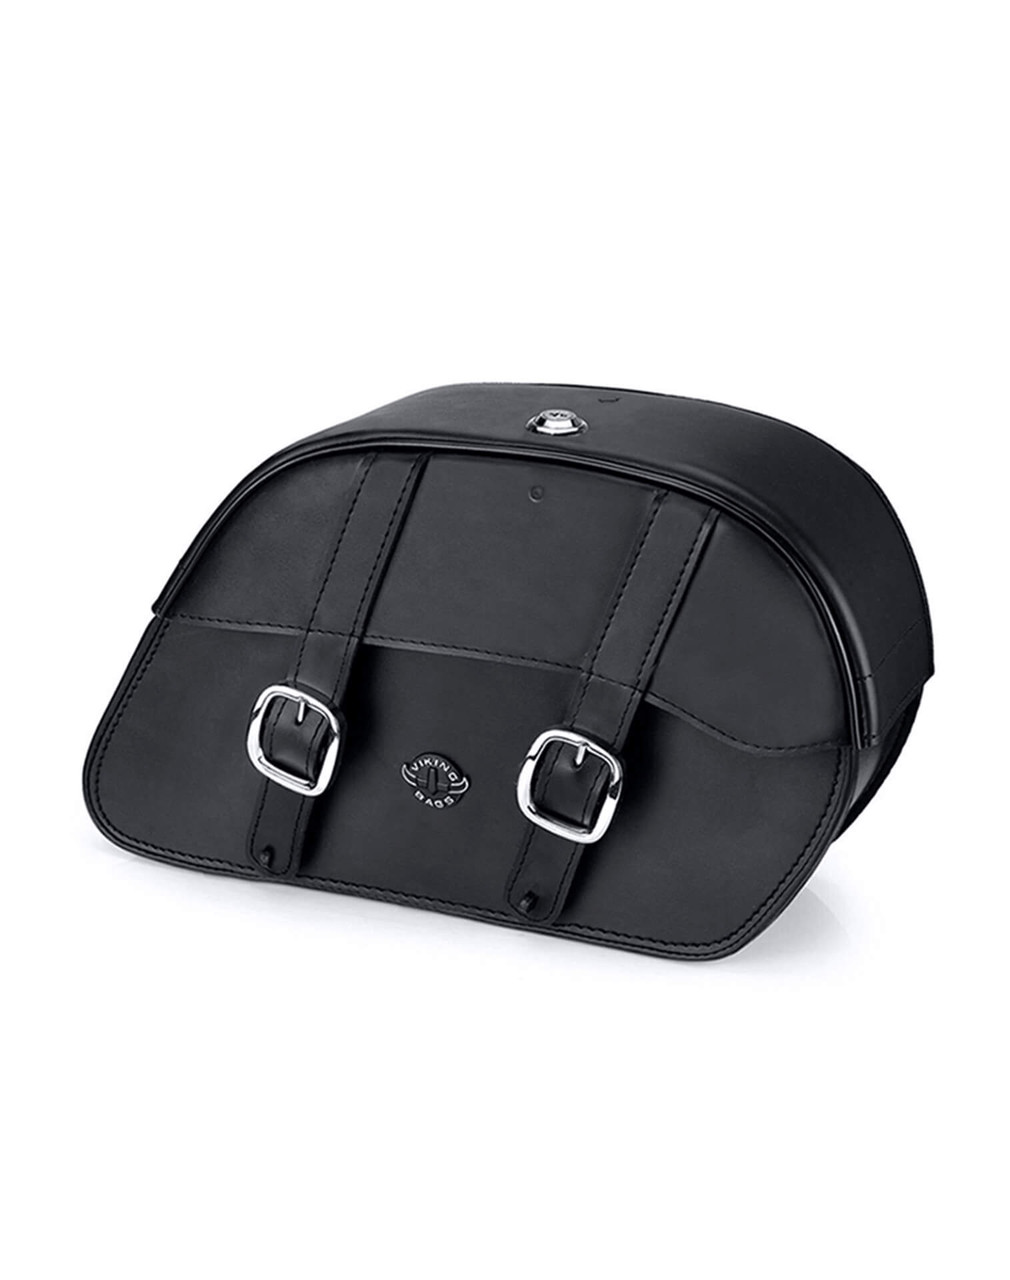 Indian Scout Sixty Charger Slanted Medium Motorcycle Saddlebags Main Bag View